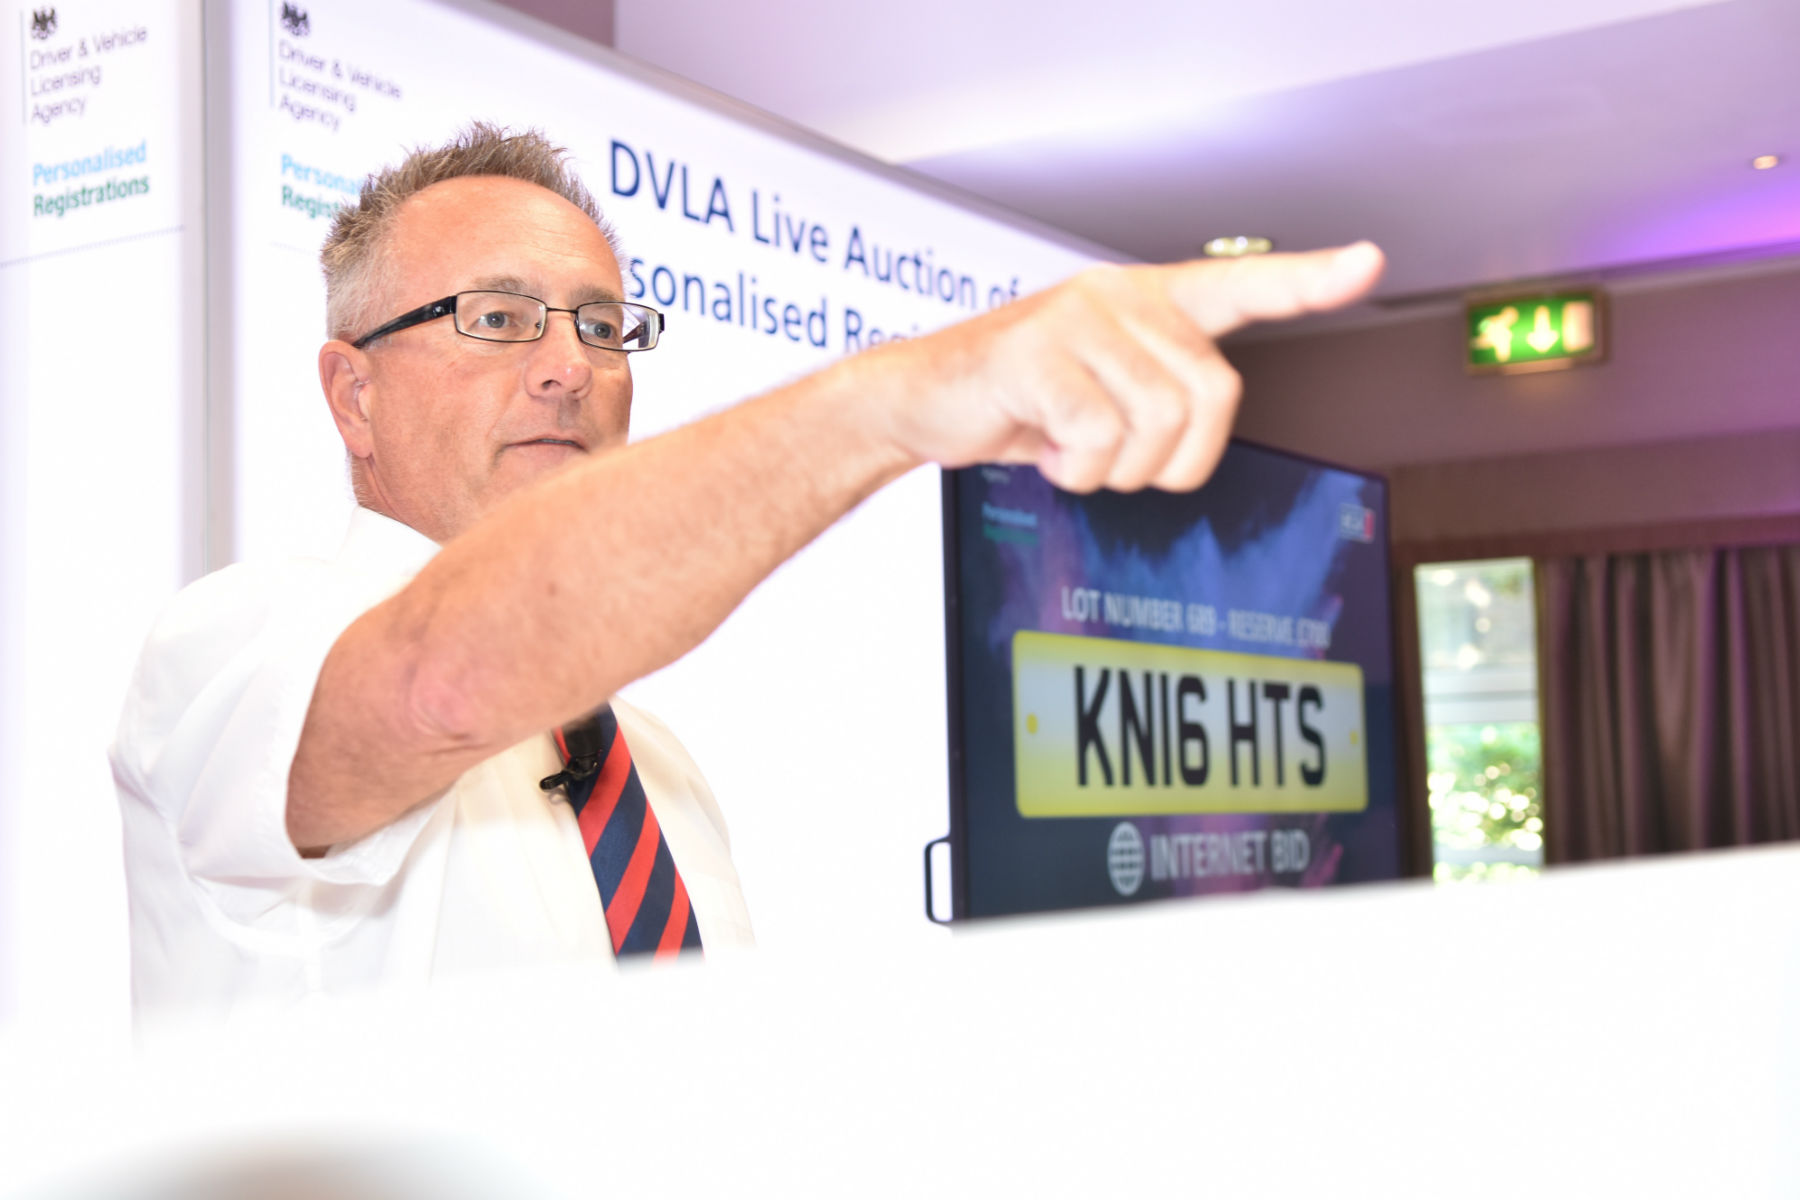 Behind the scenes at the DVLA's £5.1m number plate auction